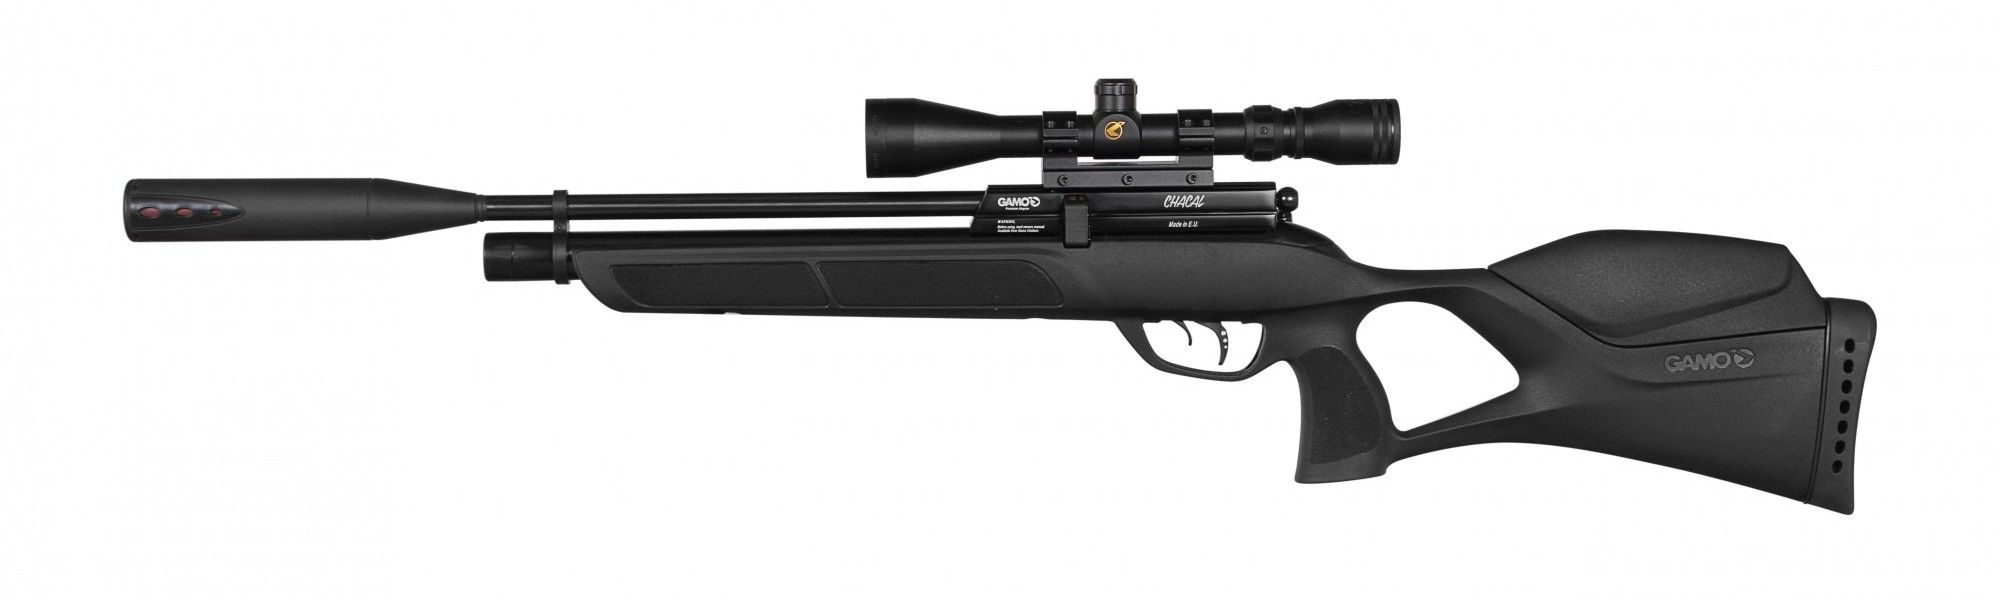 CHACAL PCP GAMO AIRGUN CARBINE 5 5MM CALIBER